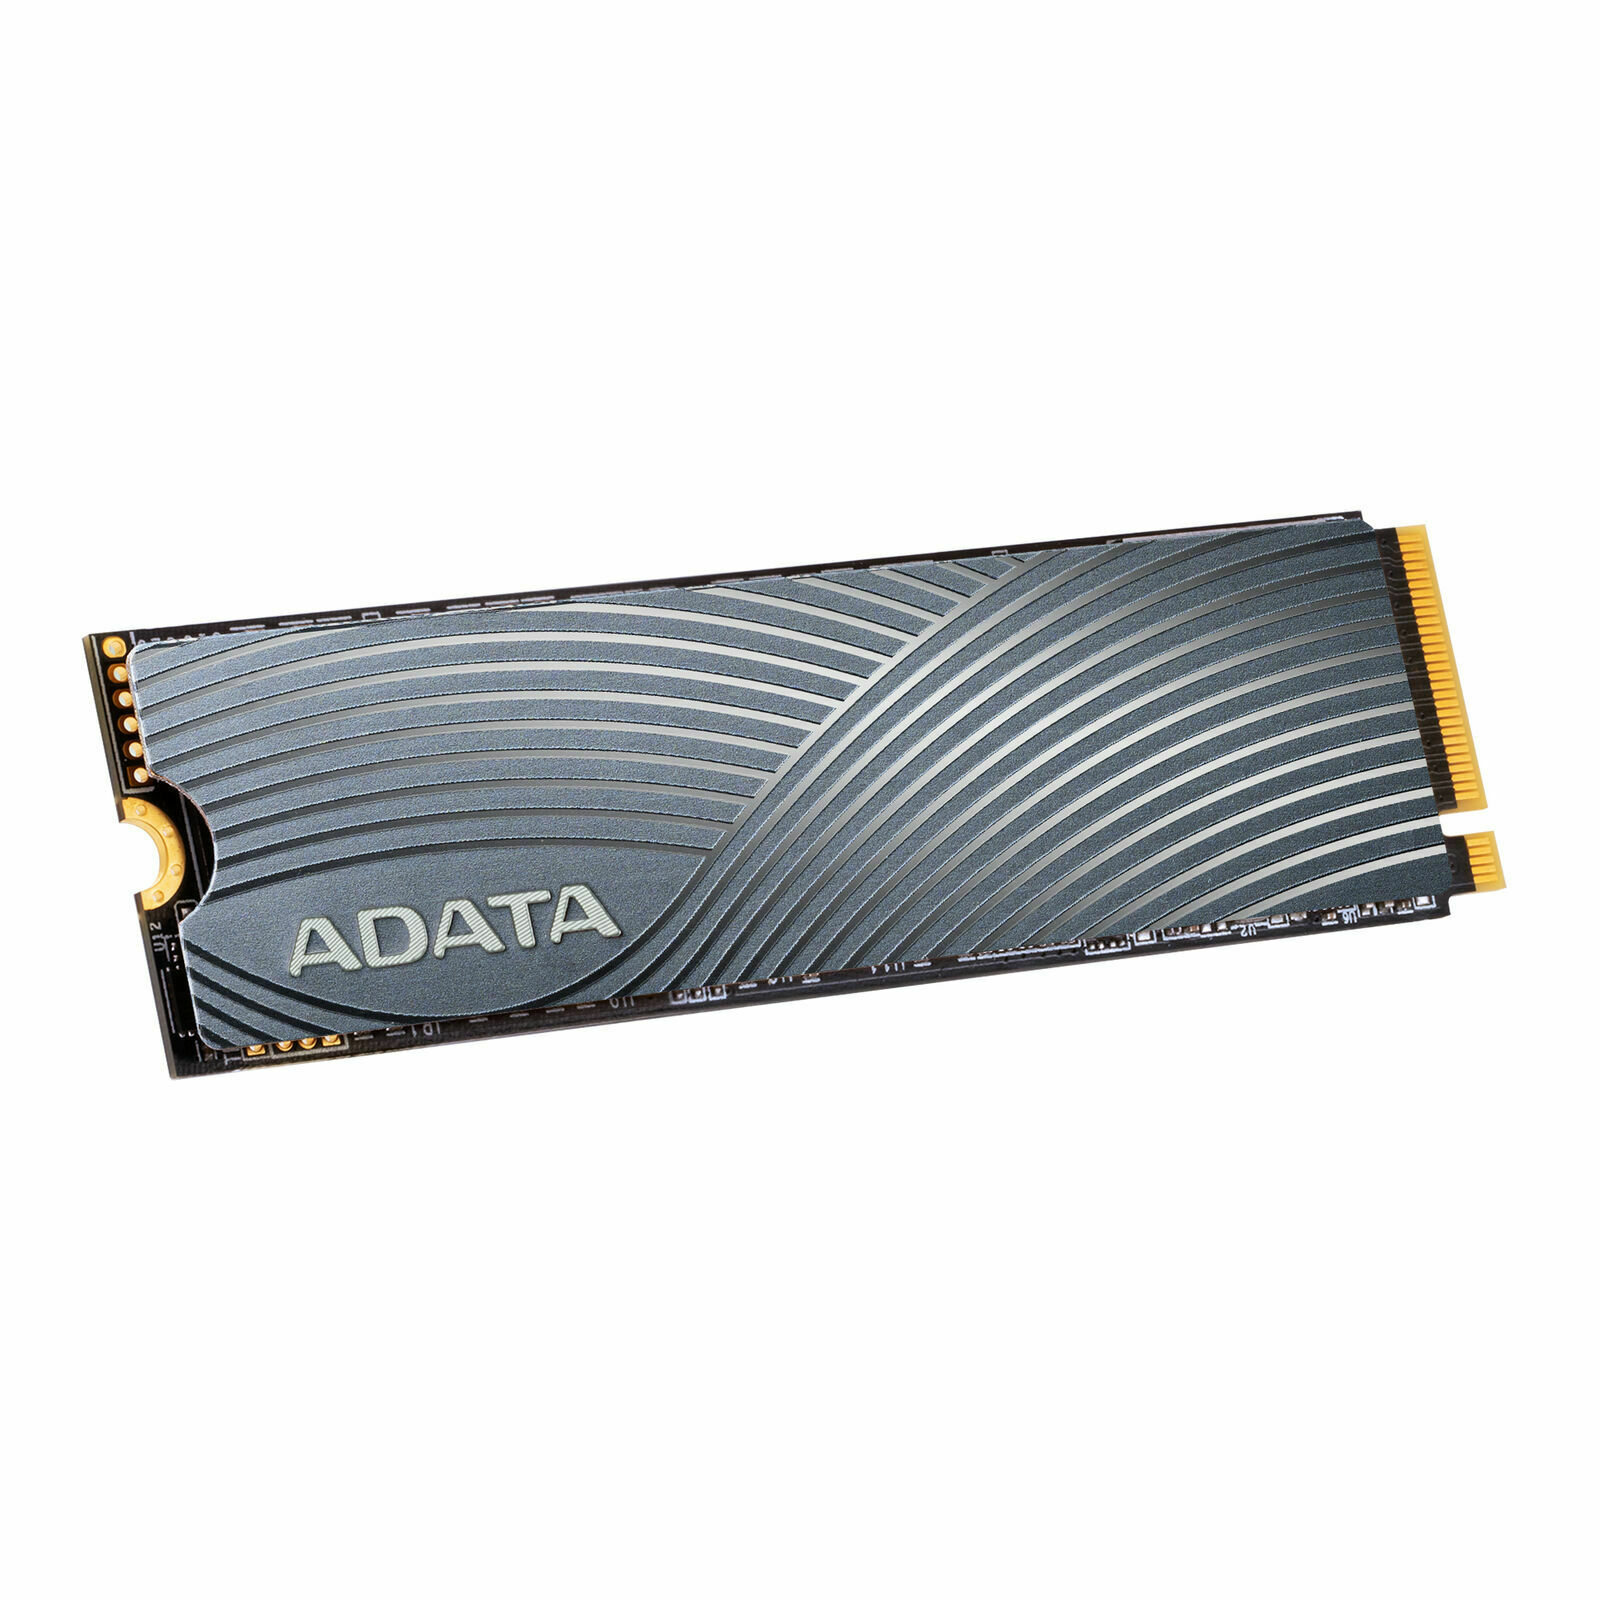 ADATA Swordfish 1TB PCIe Gen3x4 M.2 2280, 3D-NAND Internal Solid State Drive. Buy it now for 101.99